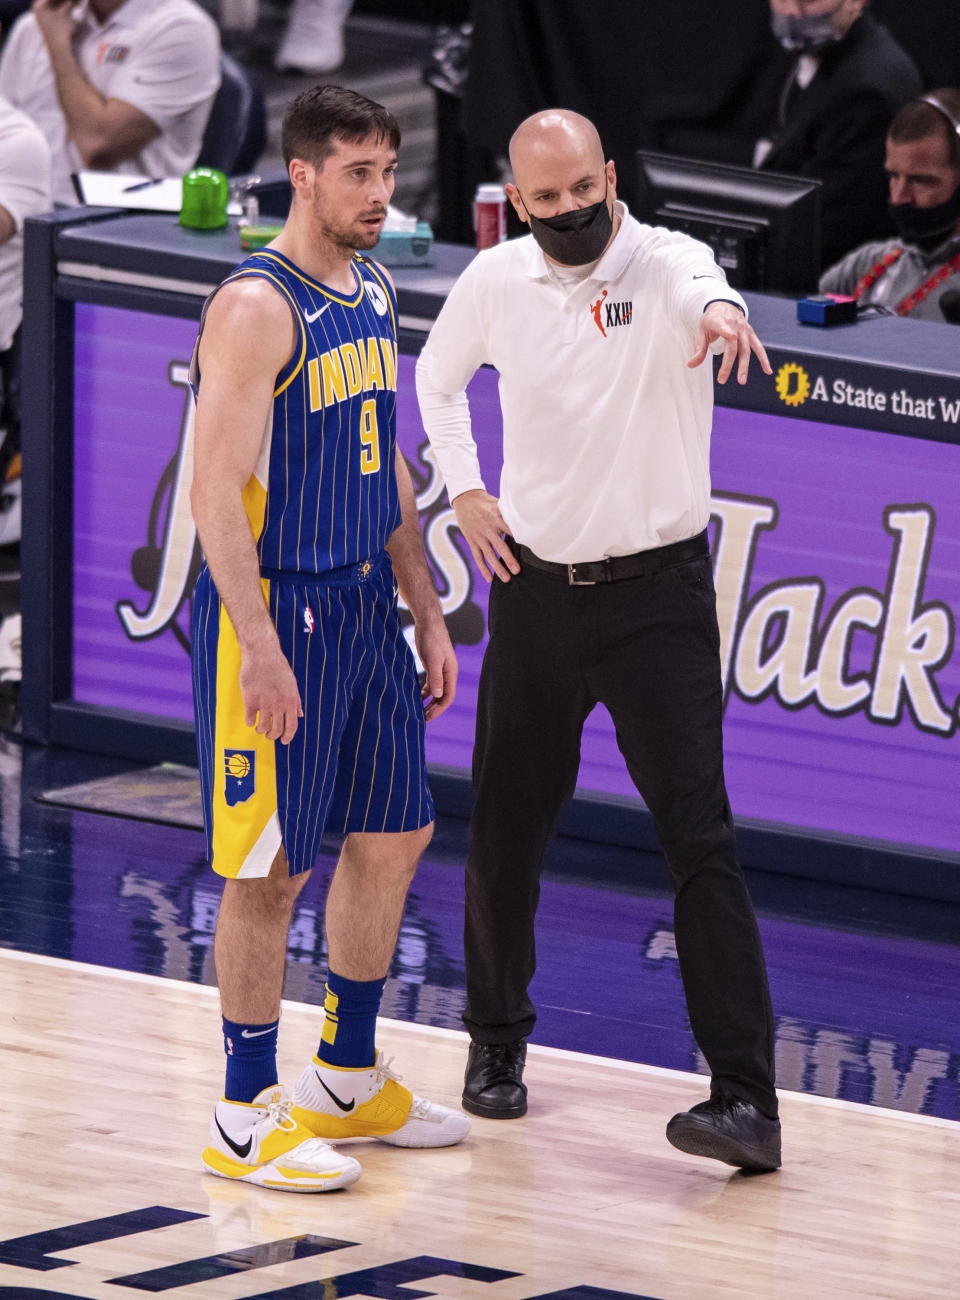 Indiana Pacers head coach Nate Bjorkgren, right, talks with guard T.J. McConnell (9) during a break in the first half of an NBA basketball game against the Los Angeles Lakers in Indianapolis, Saturday, May 15, 2021. (AP Photo/Doug McSchooler)